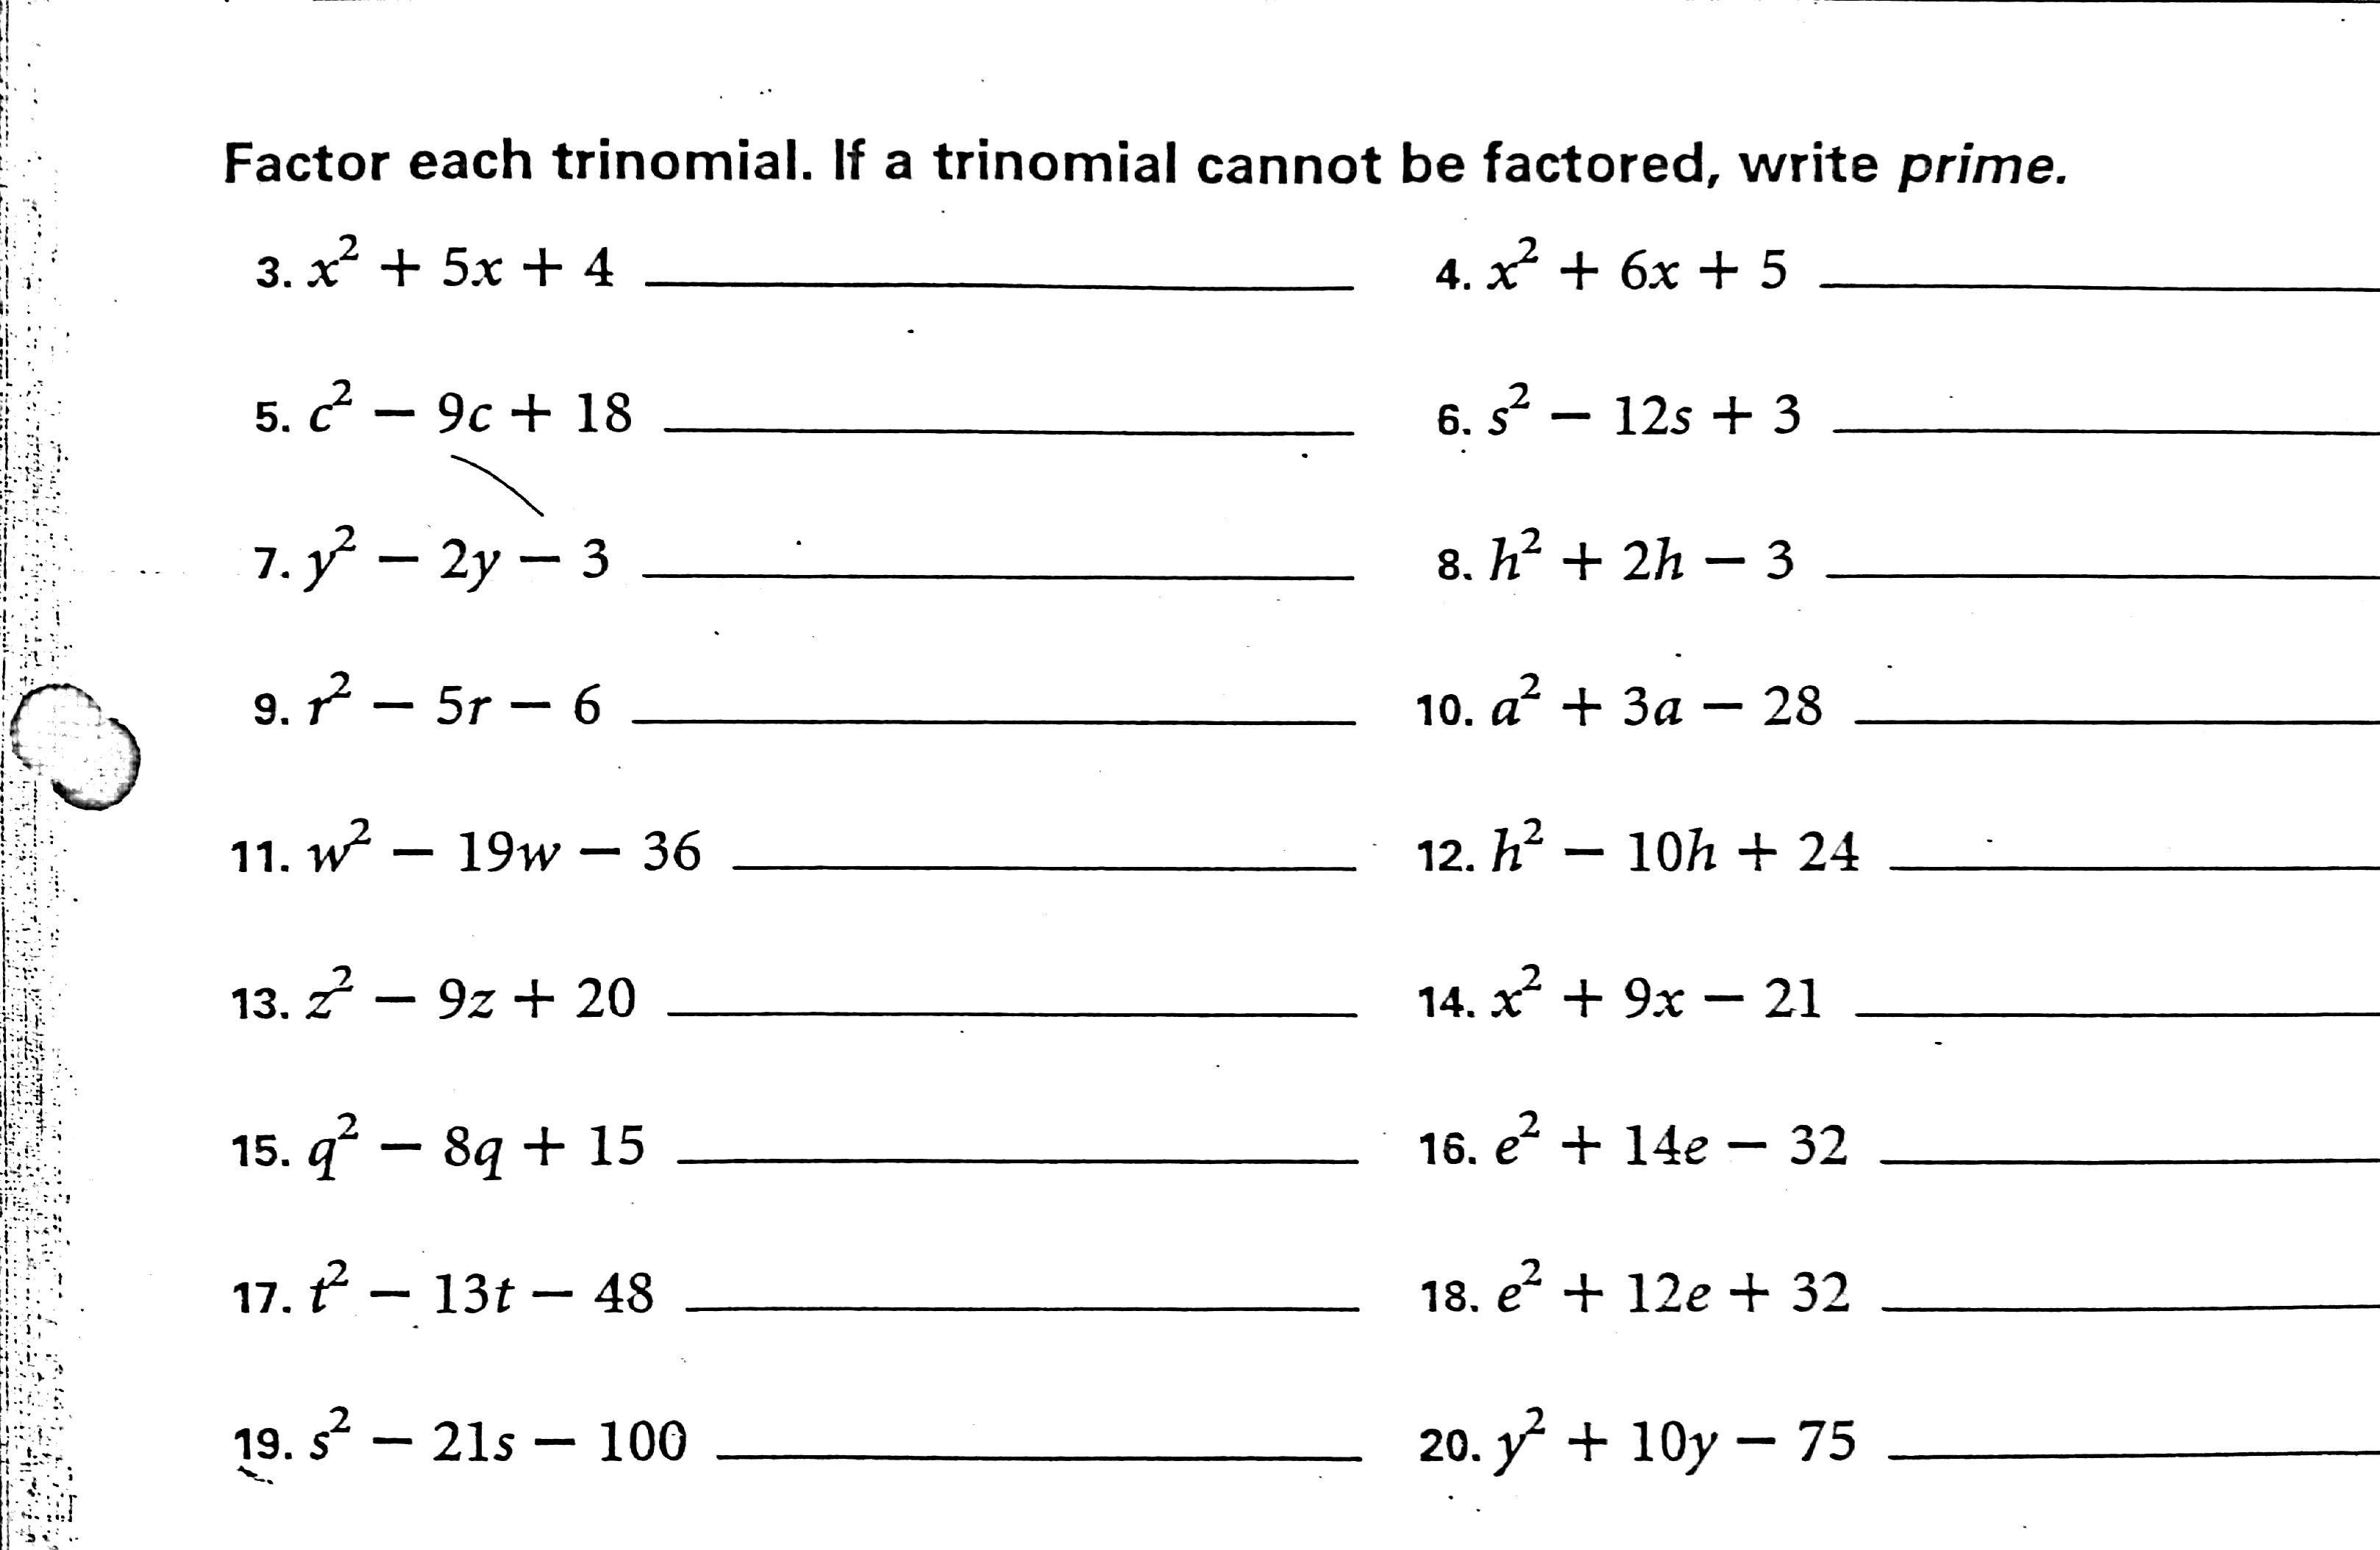 Weirdmailus  Marvellous Factoring Worksheet  Delwfgcom With Excellent Factoring Polynomials Practice Worksheet With Answers Coterraneo With Amusing Sight Words Worksheets For Preschool Also Worksheets On Mixtures And Solutions In Addition Free Grammar Worksheets For Th Grade And English Grammar Worksheets For Class  As Well As Checking Subtraction With Addition Worksheet Additionally Grade  English Grammar Worksheets From Delwfgcom With Weirdmailus  Excellent Factoring Worksheet  Delwfgcom With Amusing Factoring Polynomials Practice Worksheet With Answers Coterraneo And Marvellous Sight Words Worksheets For Preschool Also Worksheets On Mixtures And Solutions In Addition Free Grammar Worksheets For Th Grade From Delwfgcom